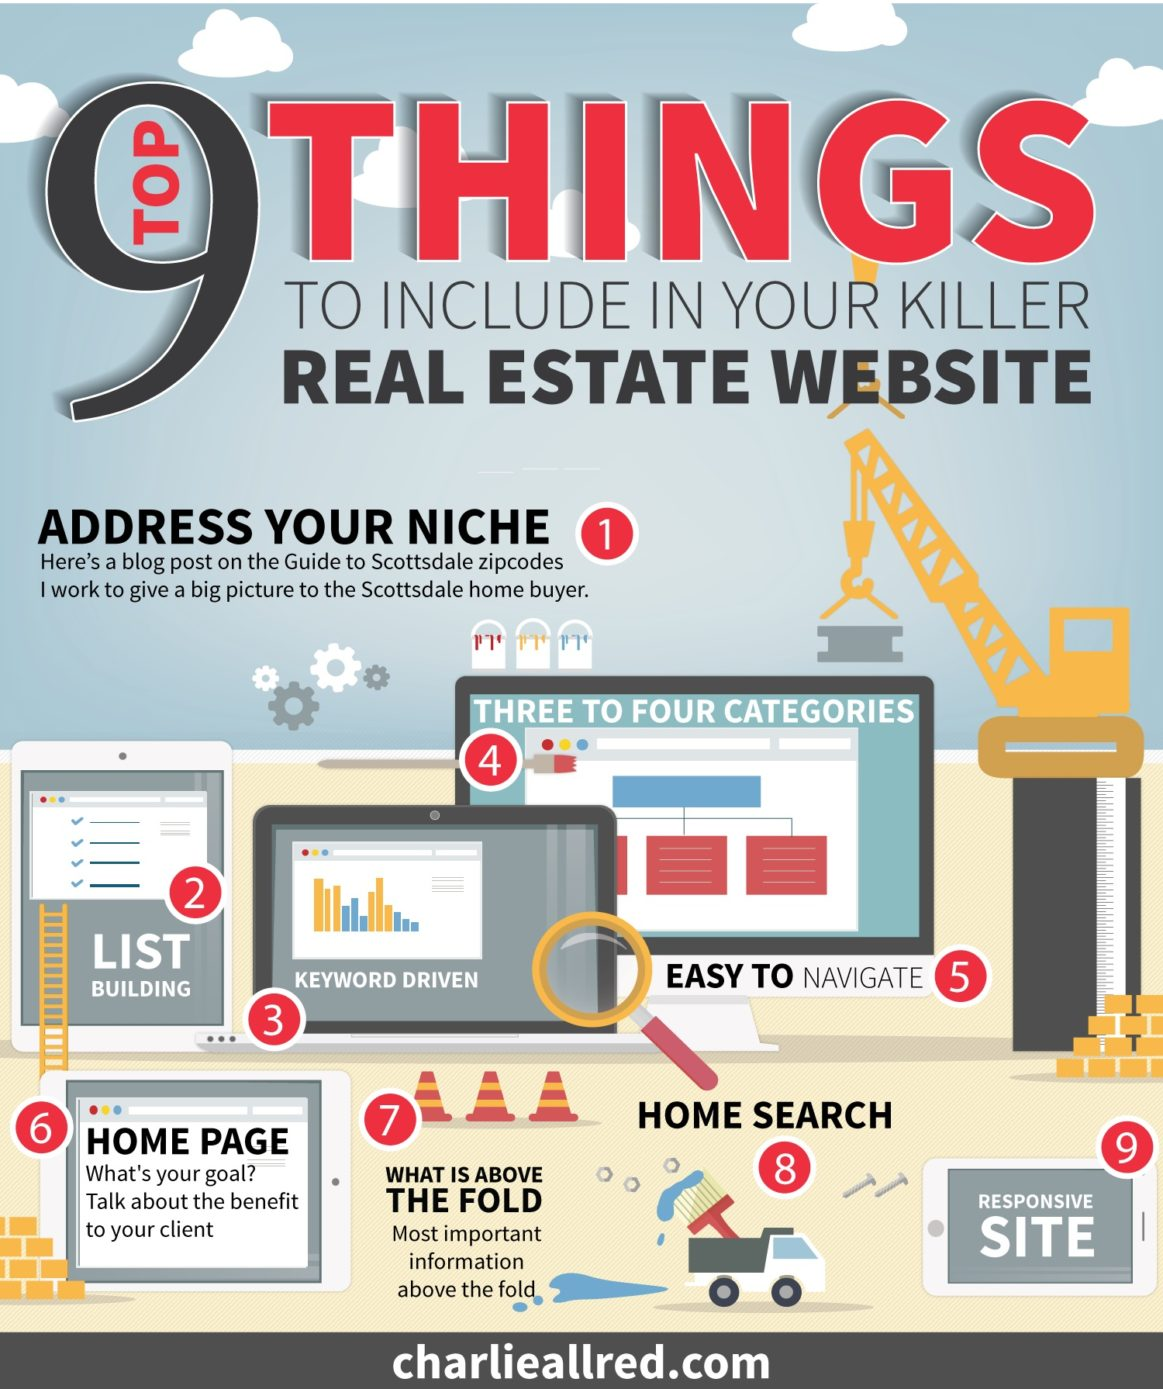 9 features of a great real estate website